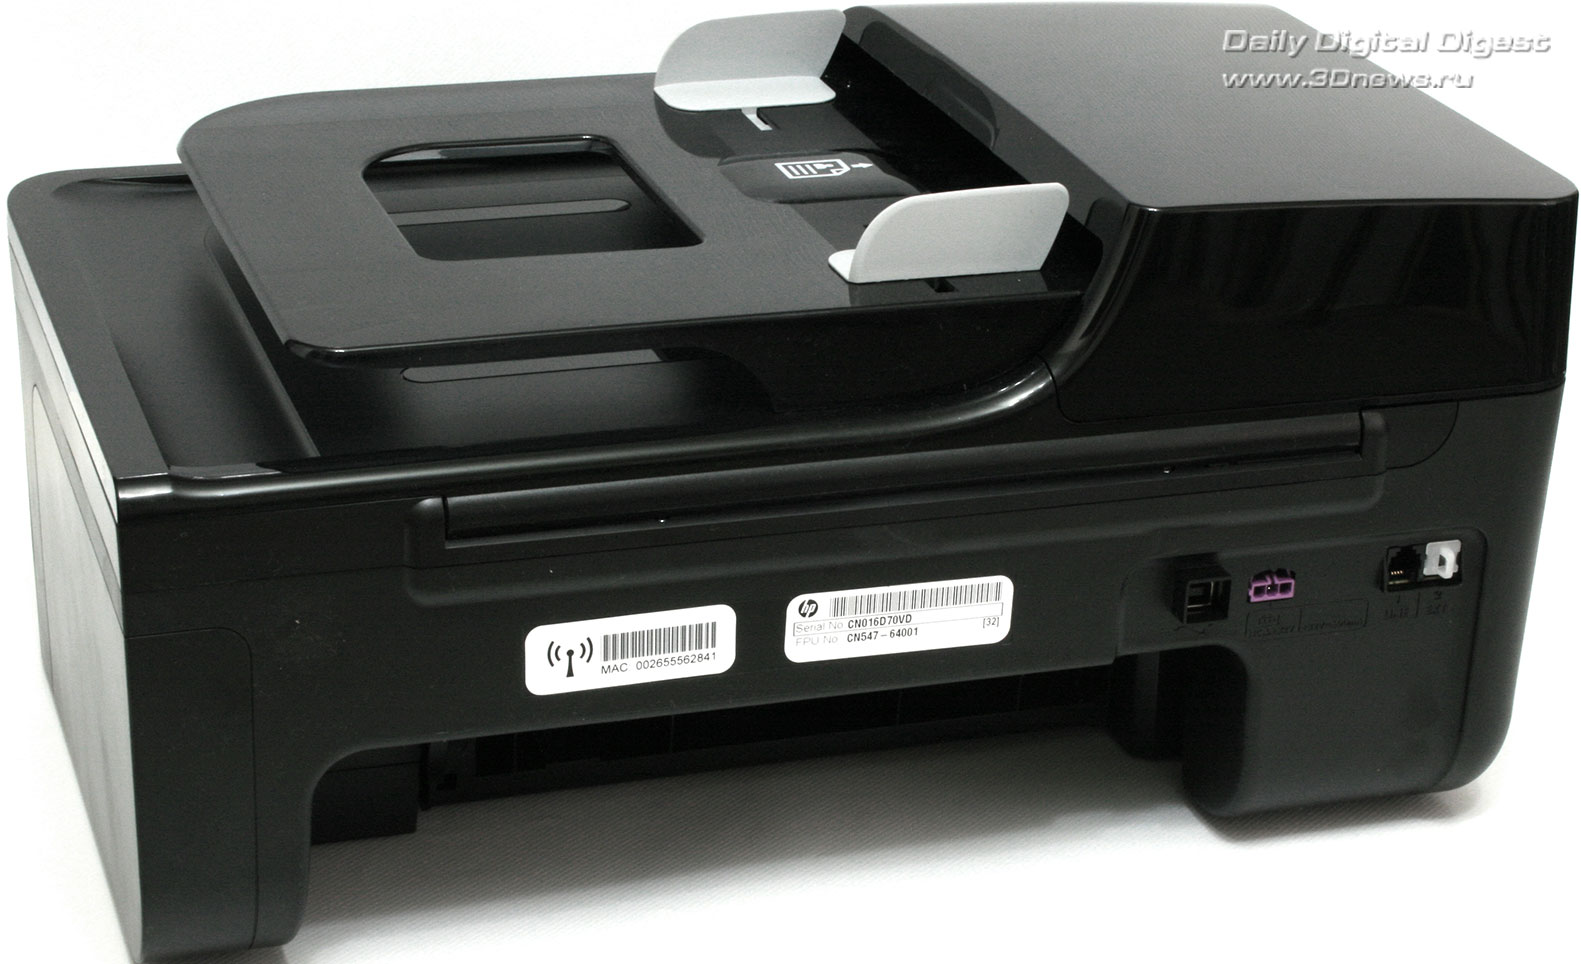 HP OFFICEJET 4500 G510G M DRIVERS WINDOWS 7 DOWNLOAD ...